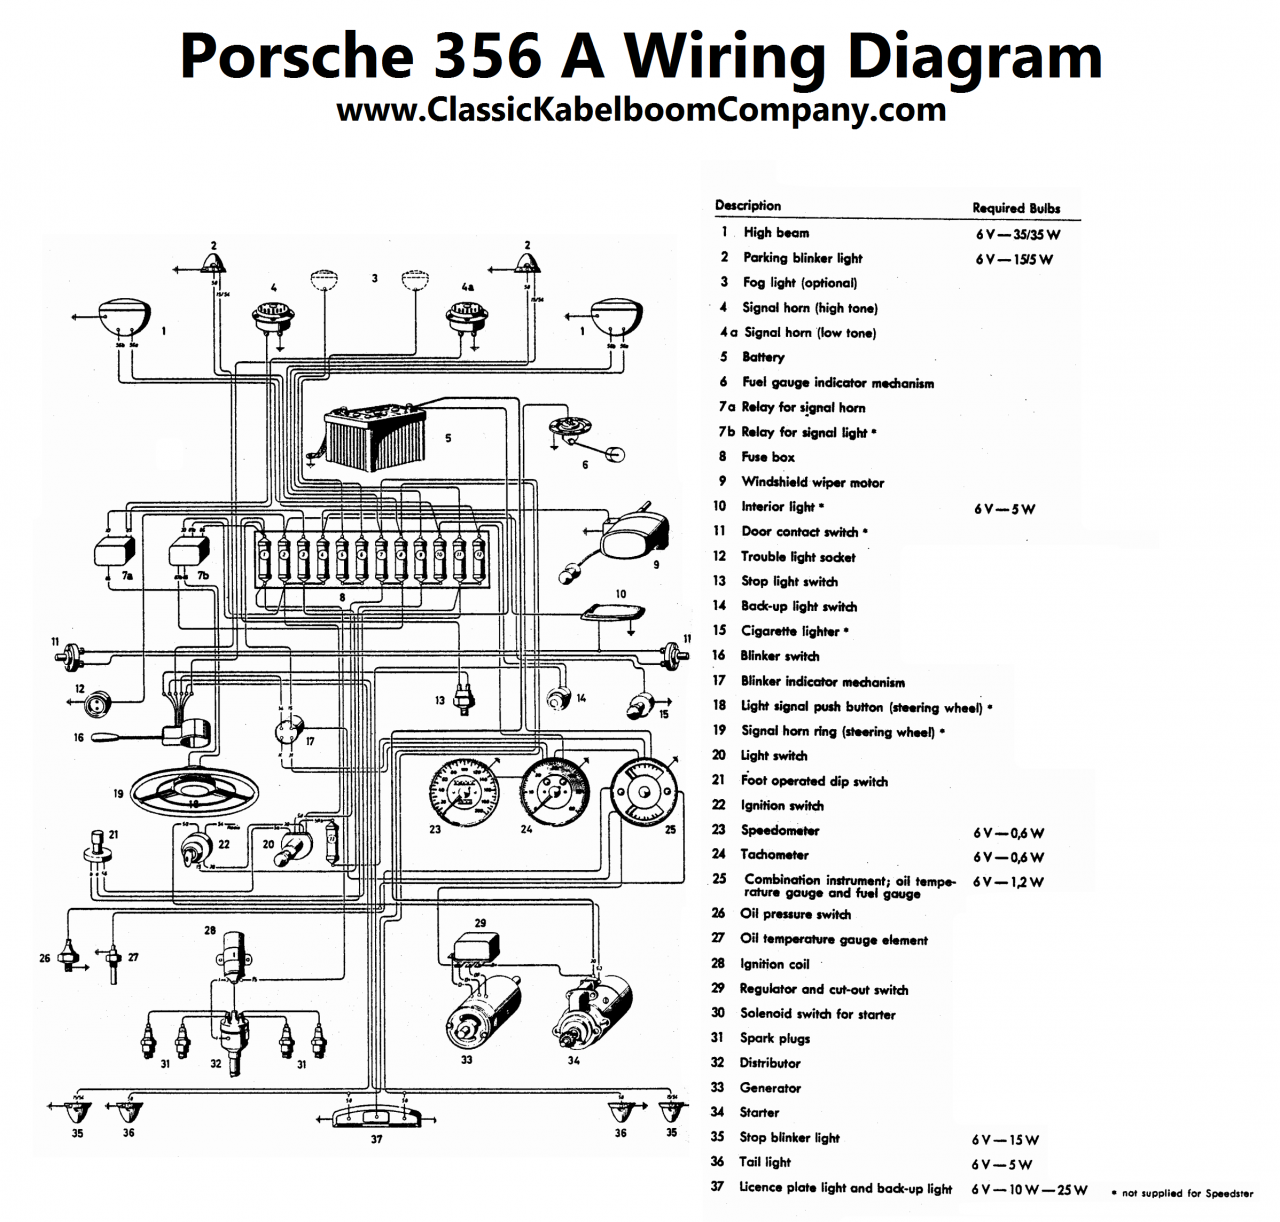 emejing t1 wiring diagram photos images for image wire gojono